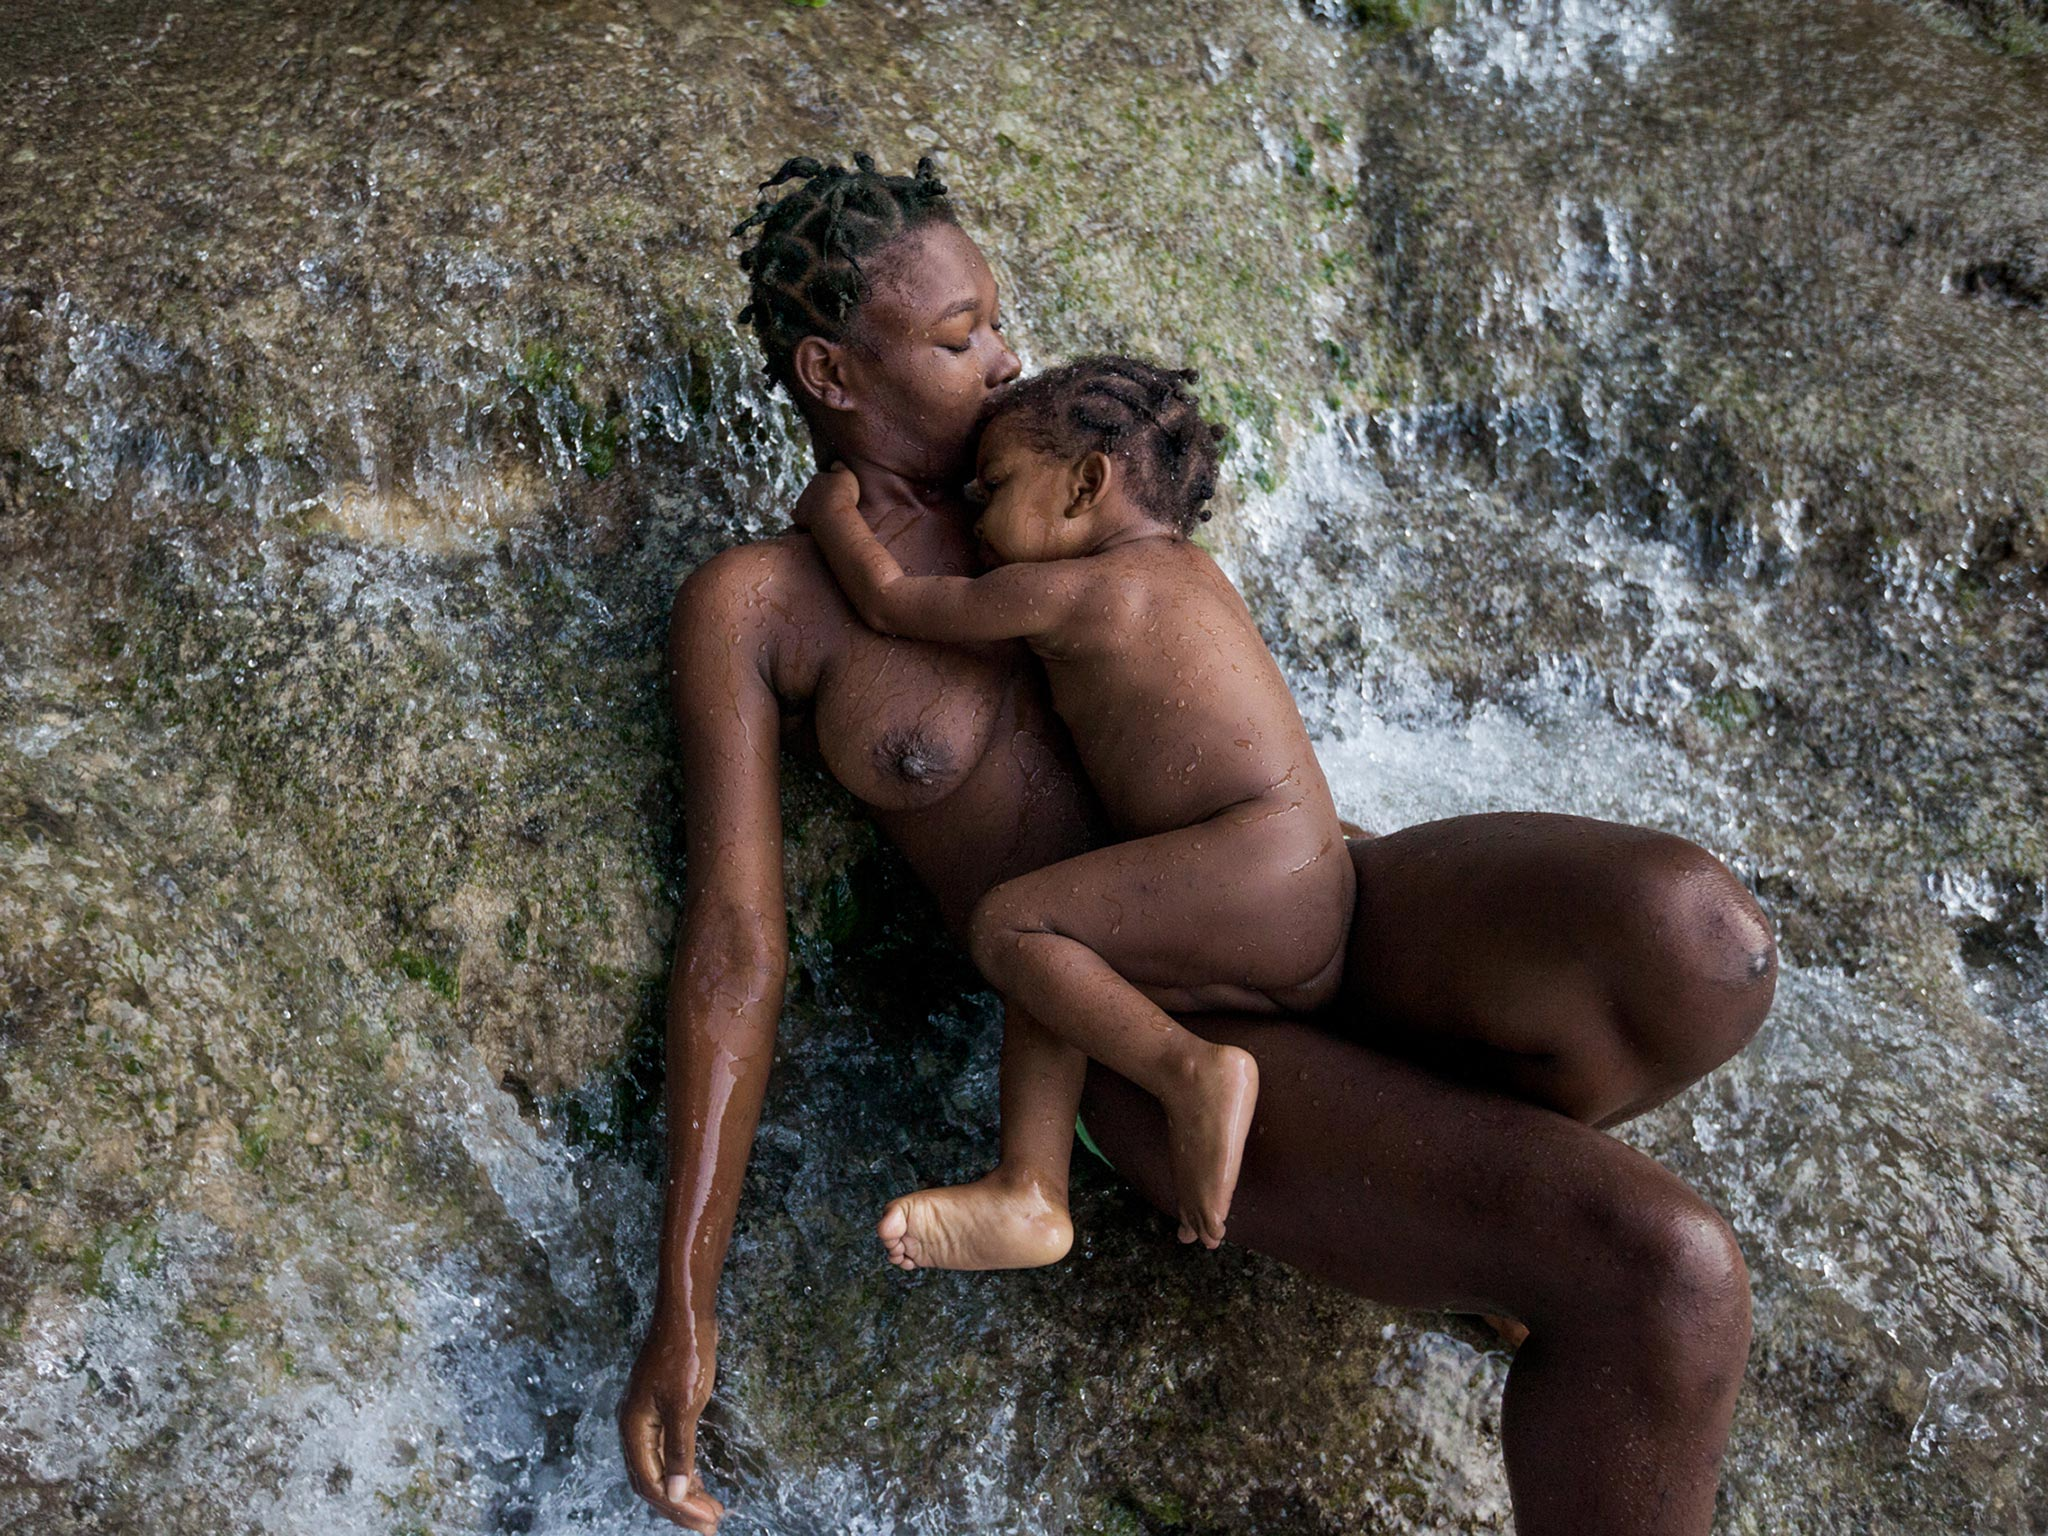 A mother and daughter in Ville Bonheur, Haiti, bathe in the sacred Saut d'Eau falls. Ezili Dantò is said to have appeared on a palm tree here in 1849. Father Johann Roten, a Marian scholar, says Mary's presence in the Caribbean can be traced to the merging of two cultures—Spanish Catholics and pre-Christian Africans—that began in the early 1500s.